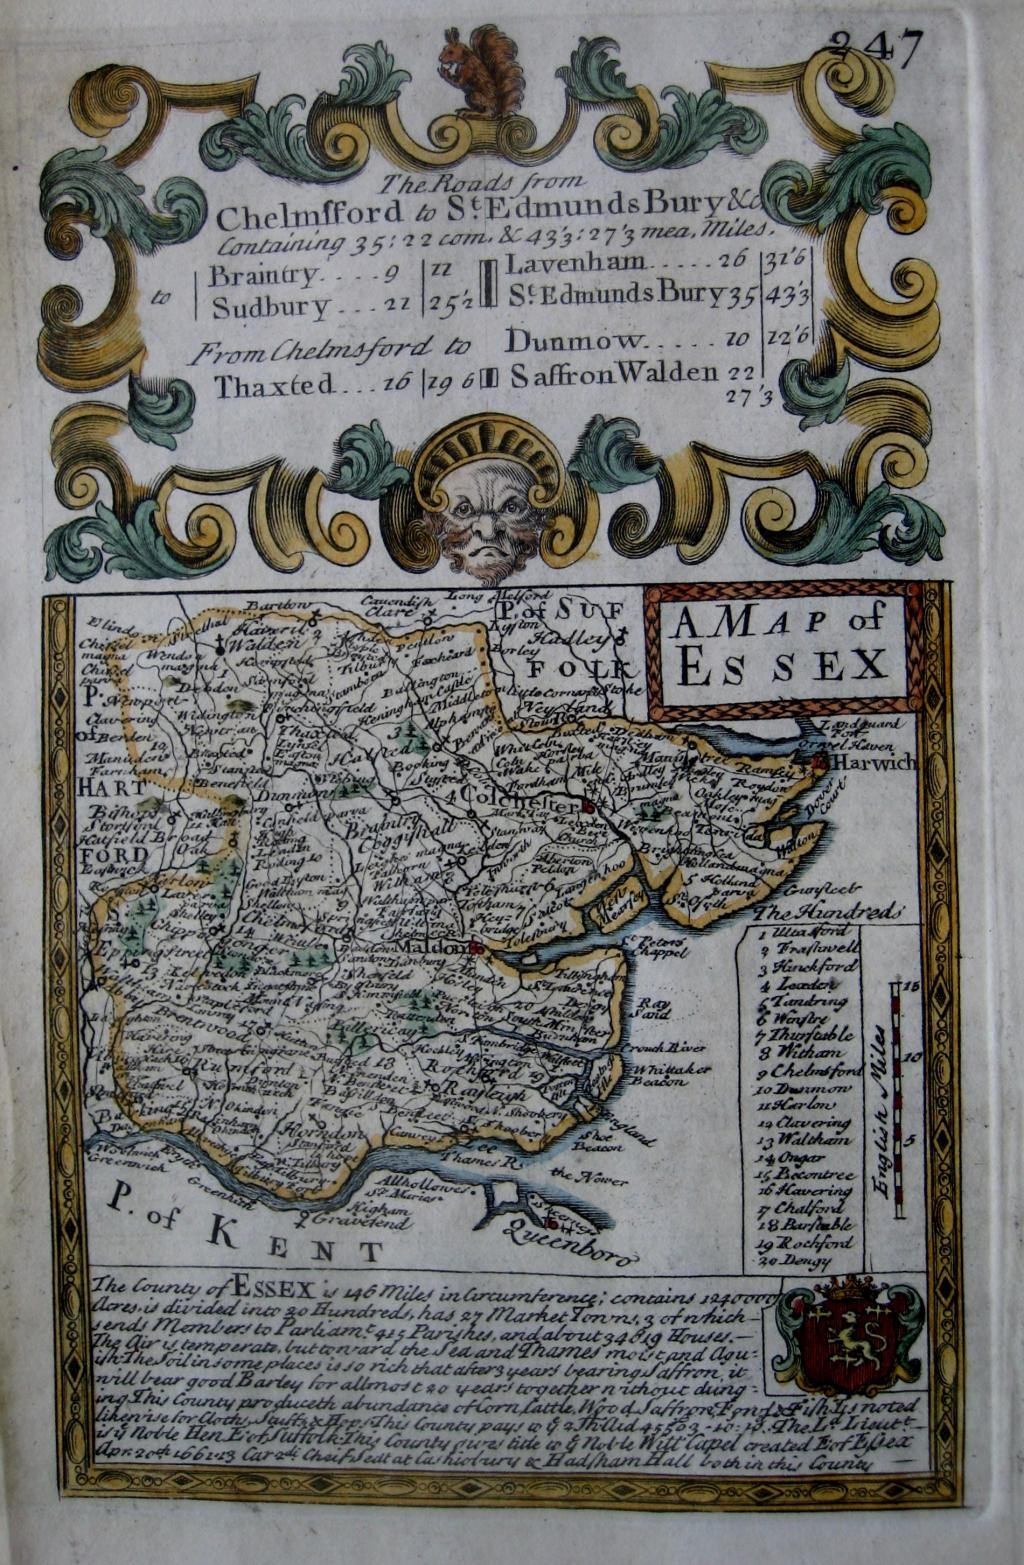 ESSEX by EMANUEL BOWEN & JOHN OWEN c1720